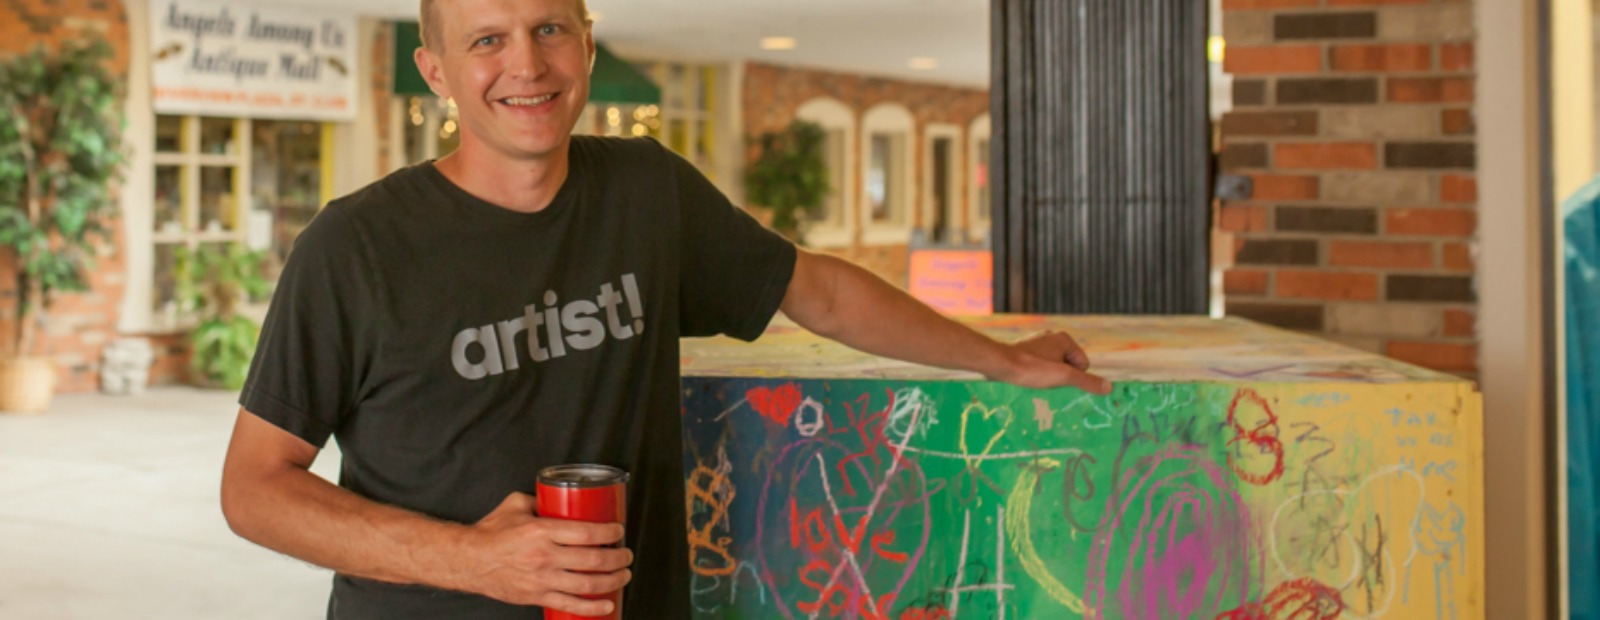 Jason Stier is heading a community art project in St. Clair to bring residents together